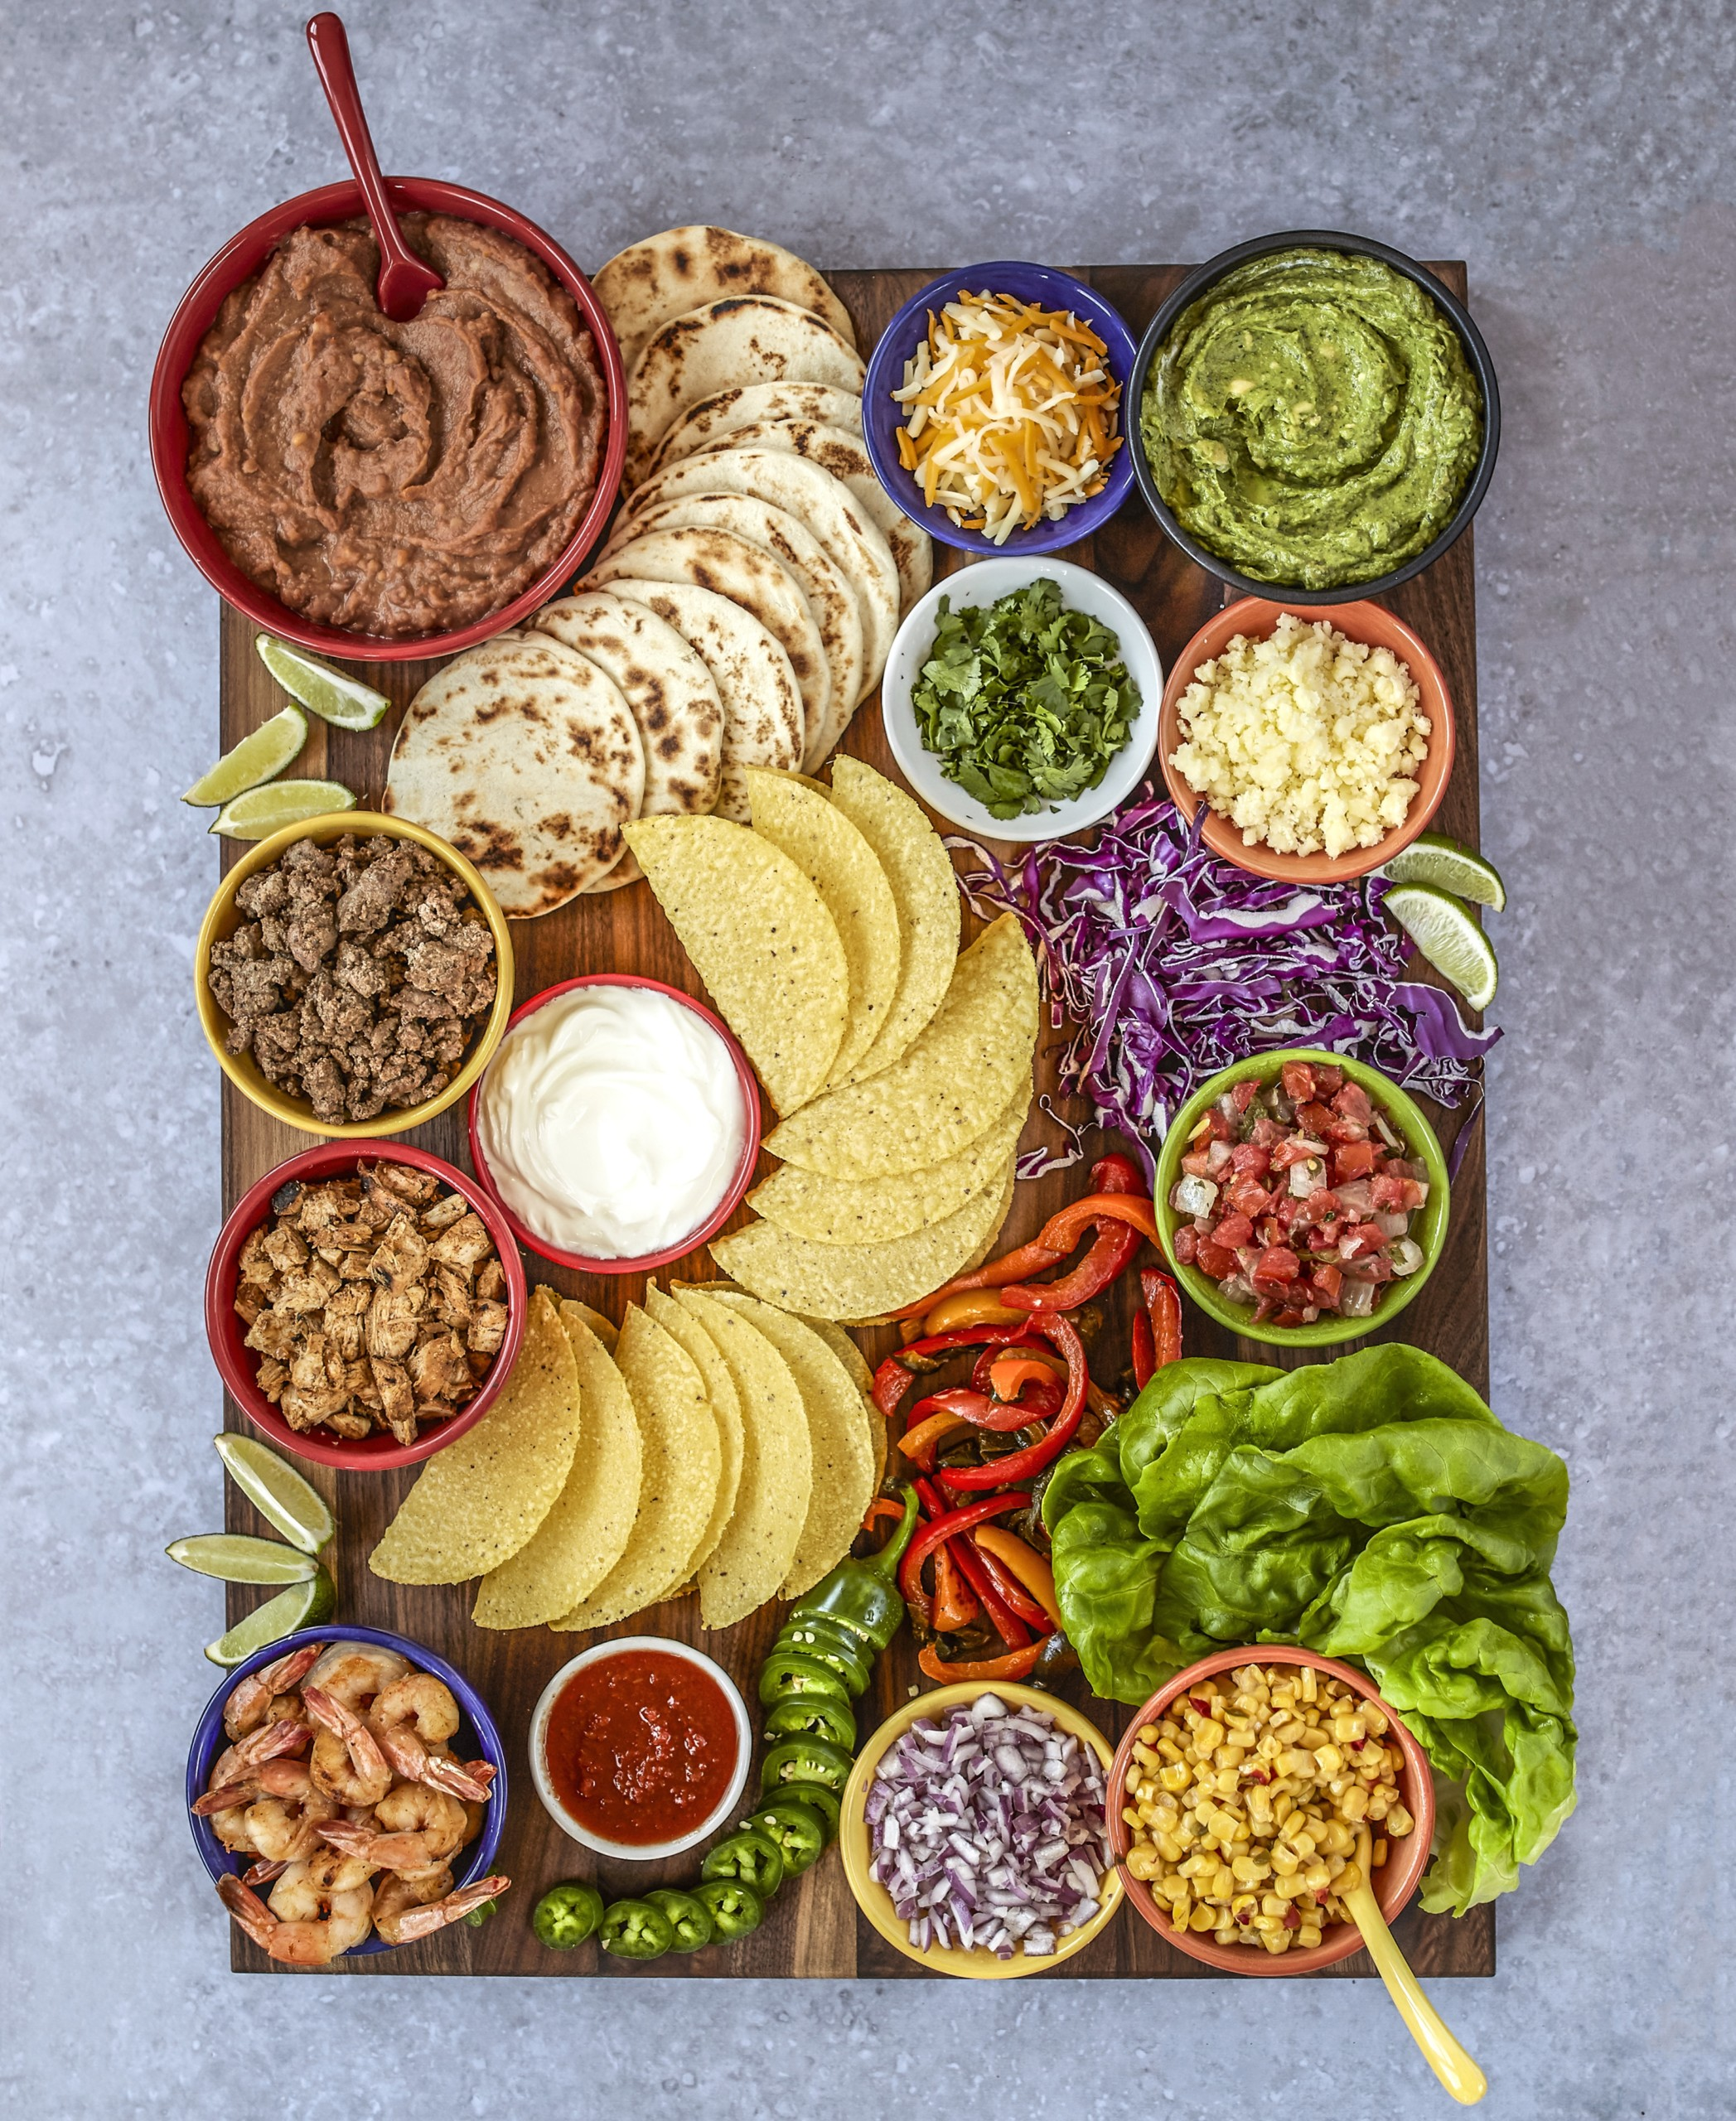 Taco Night Charcuterie Board - 20 BEST Charcuterie Board Ideas